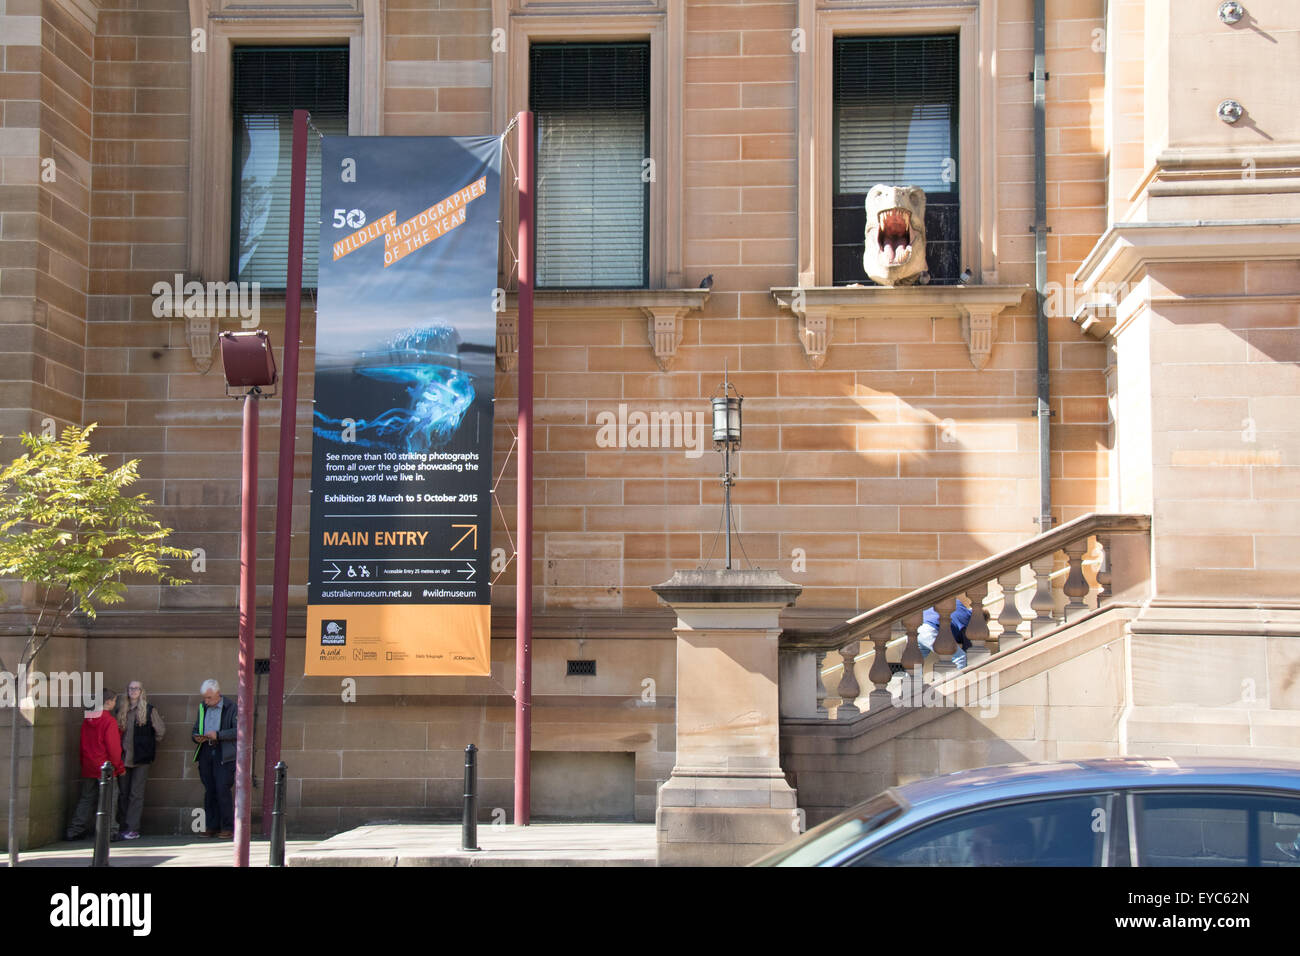 The Australian Museum on the corner of College Street and